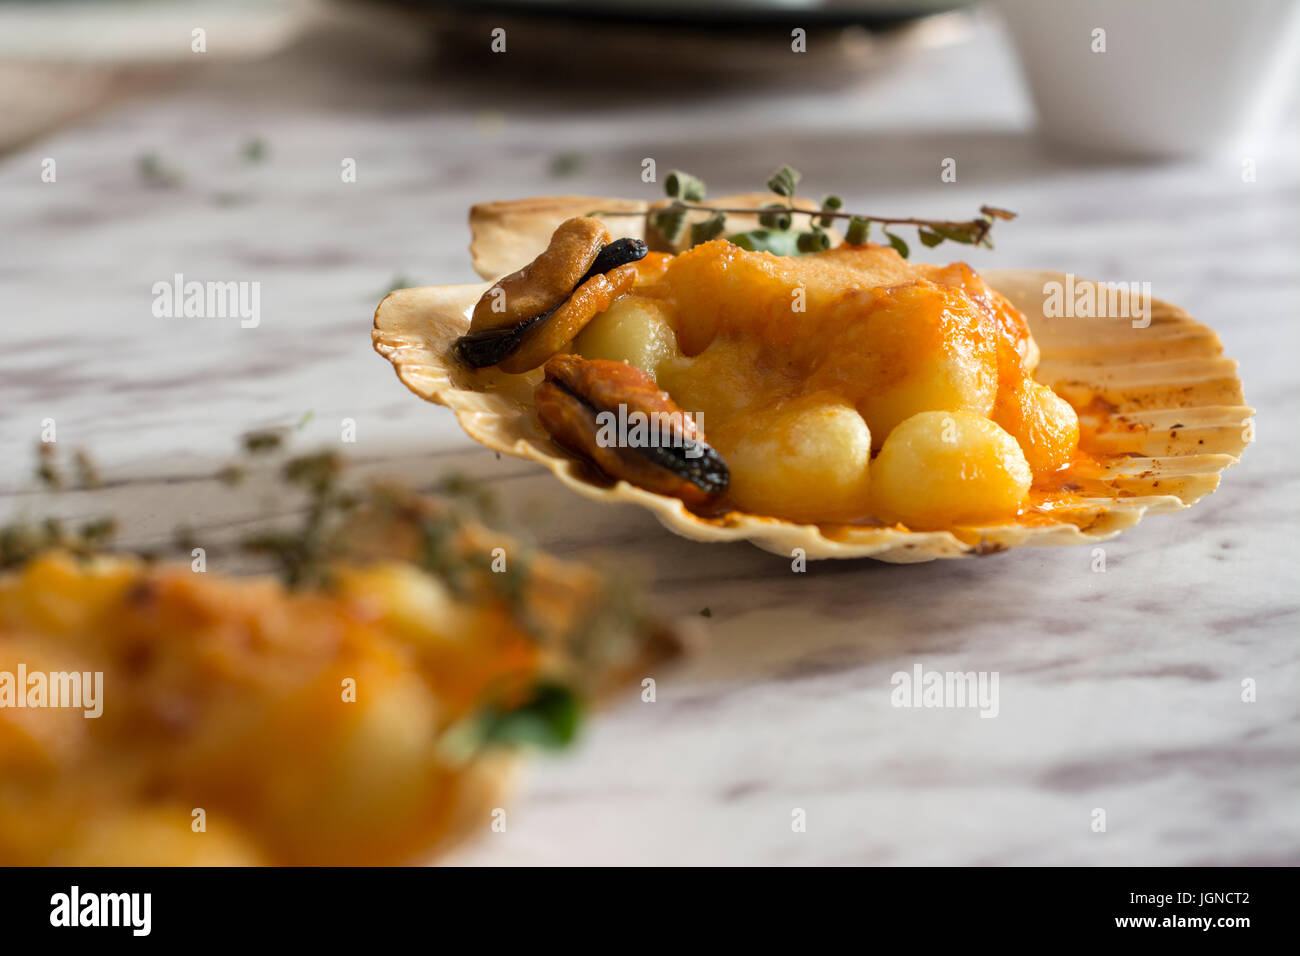 Gnocchi pasta with mussels, tomato and cream room, in vieira shell - Stock Image